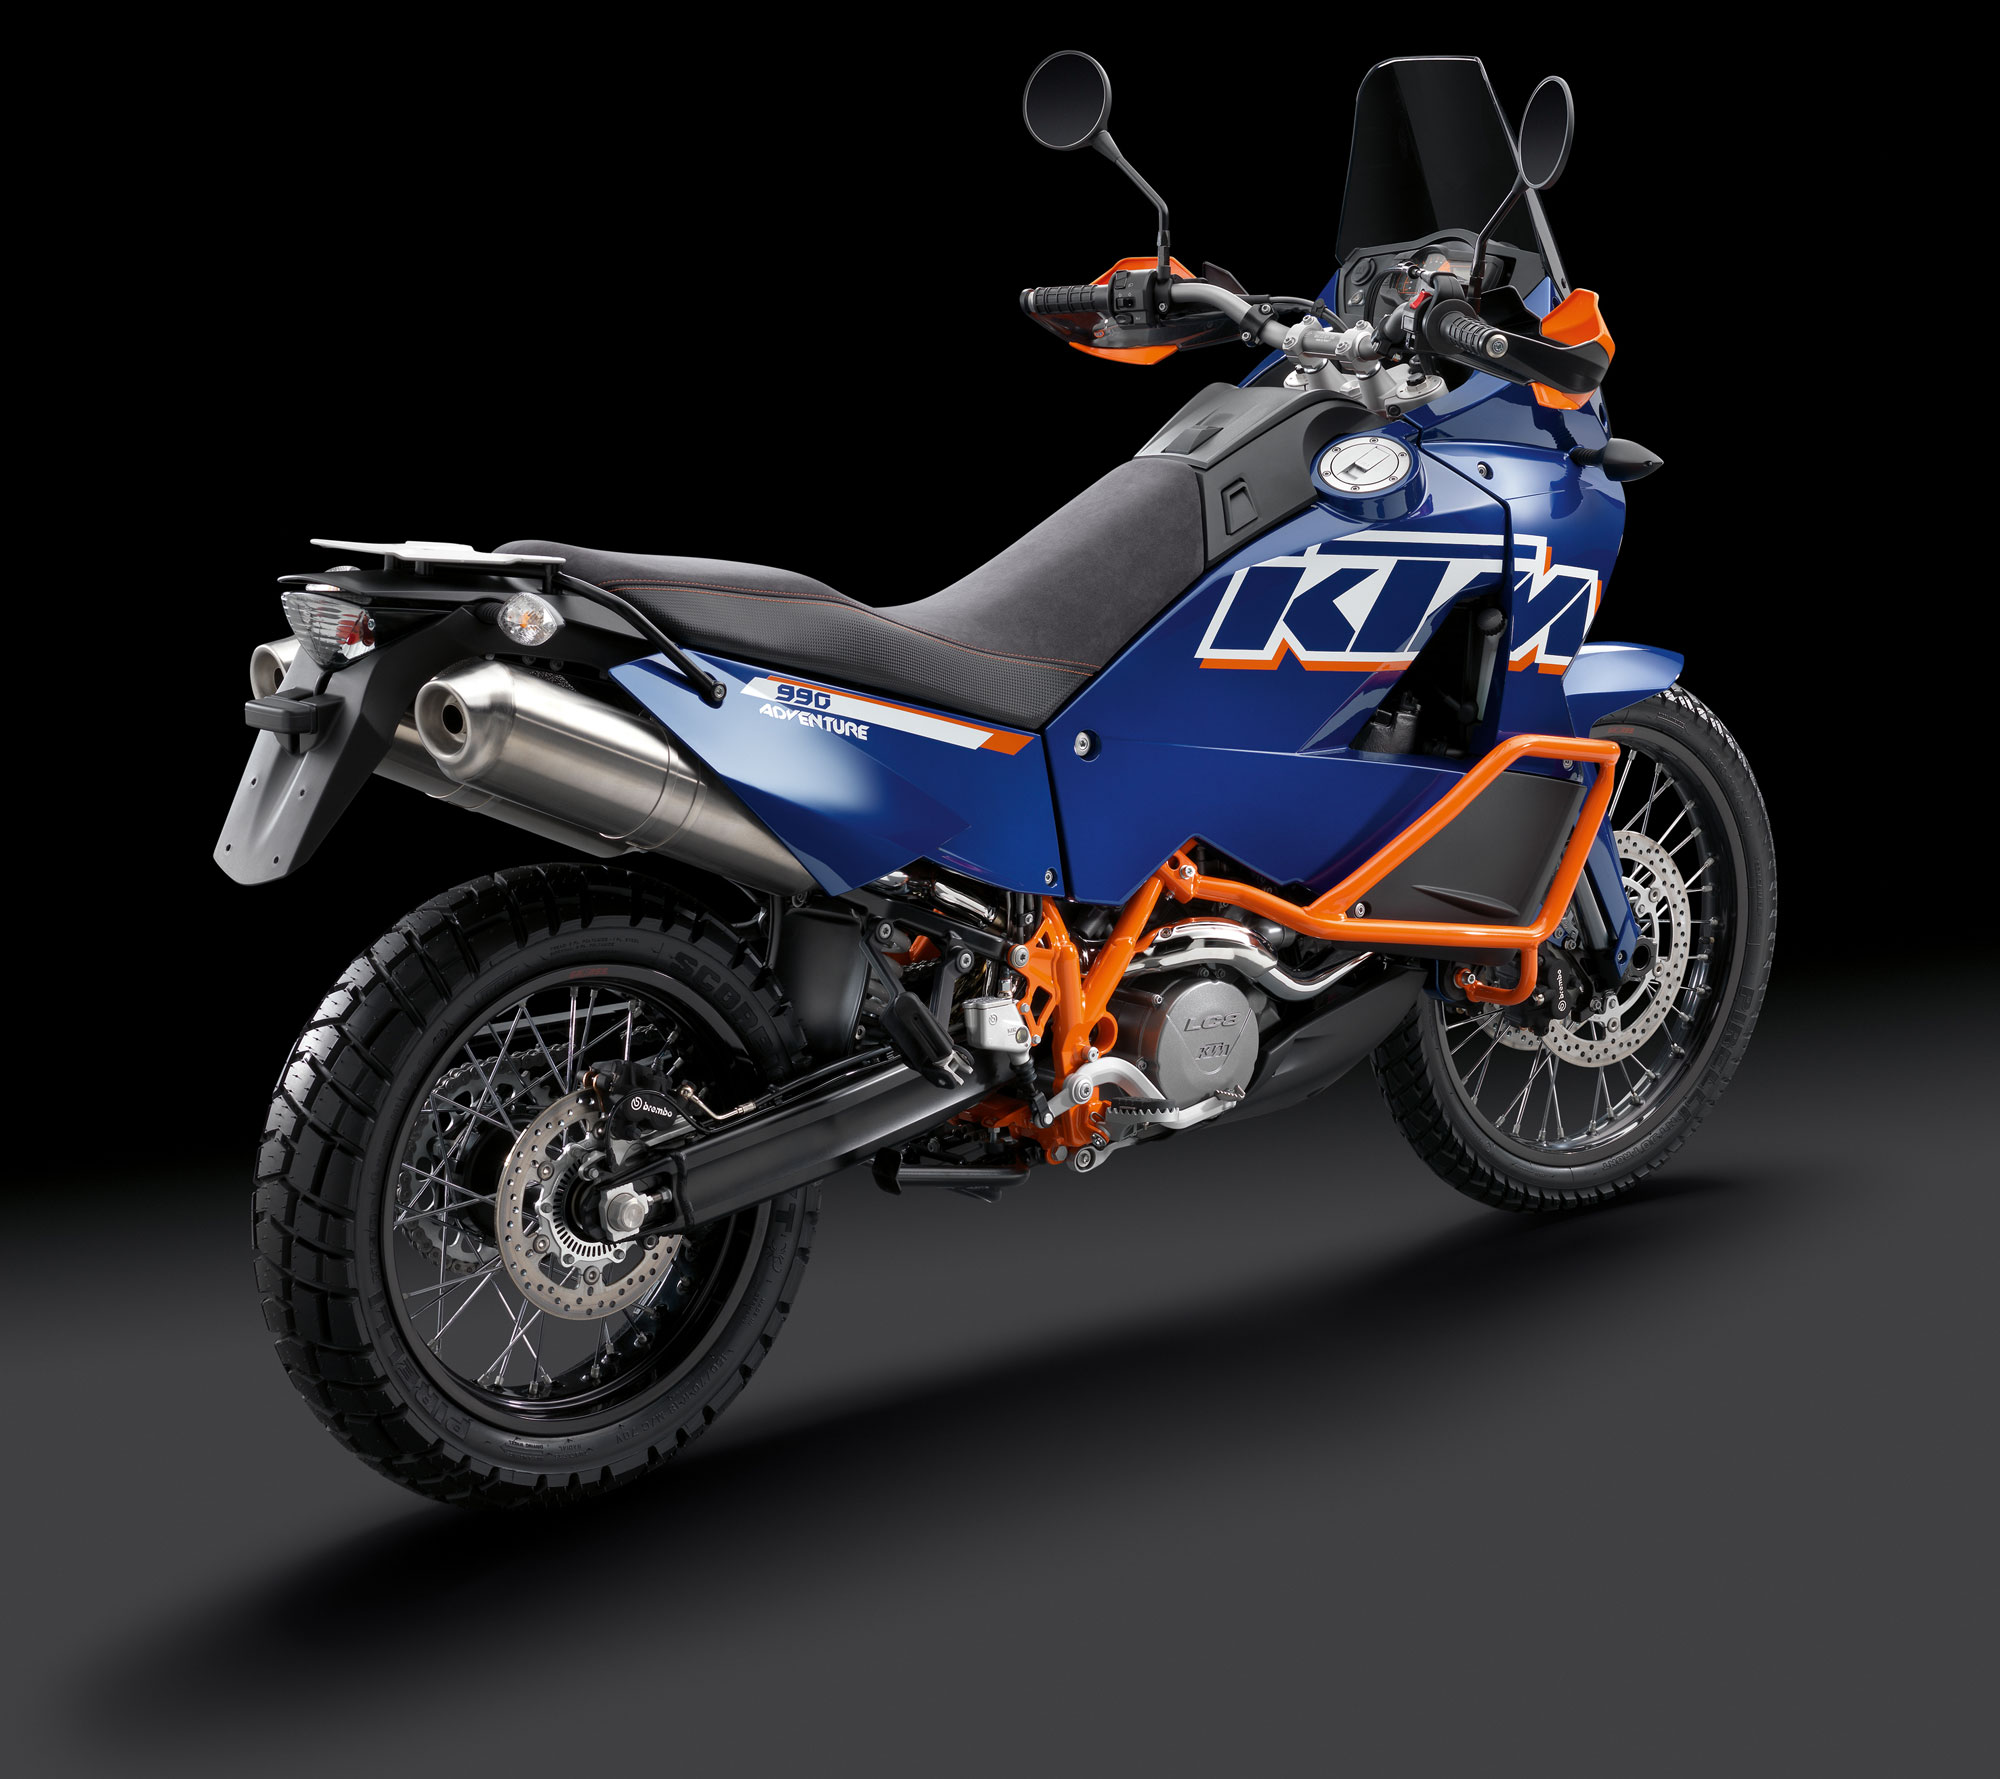 2012 KTM 990 Adventure R Review